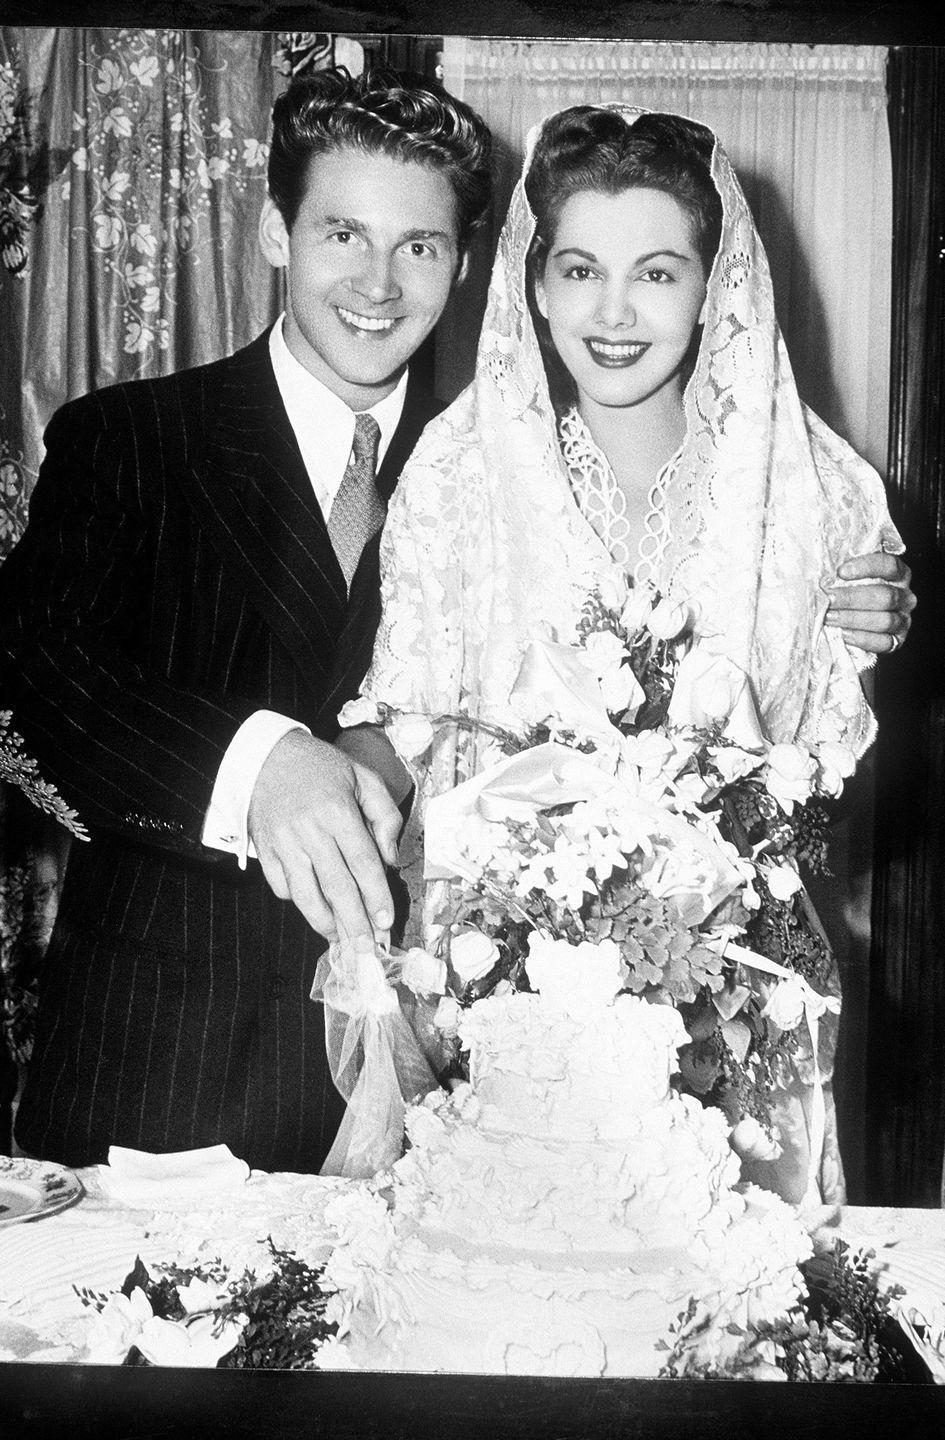 <p>Dominican actress Maria Montez wore a hooded lace veil over her wedding dress for her second marriage to French actor Jean-Pierre Aumont in 1943. The couple welcomed their first child, Tina Aumont, in 1946 and were married until Montez's sudden death in 1951. </p>